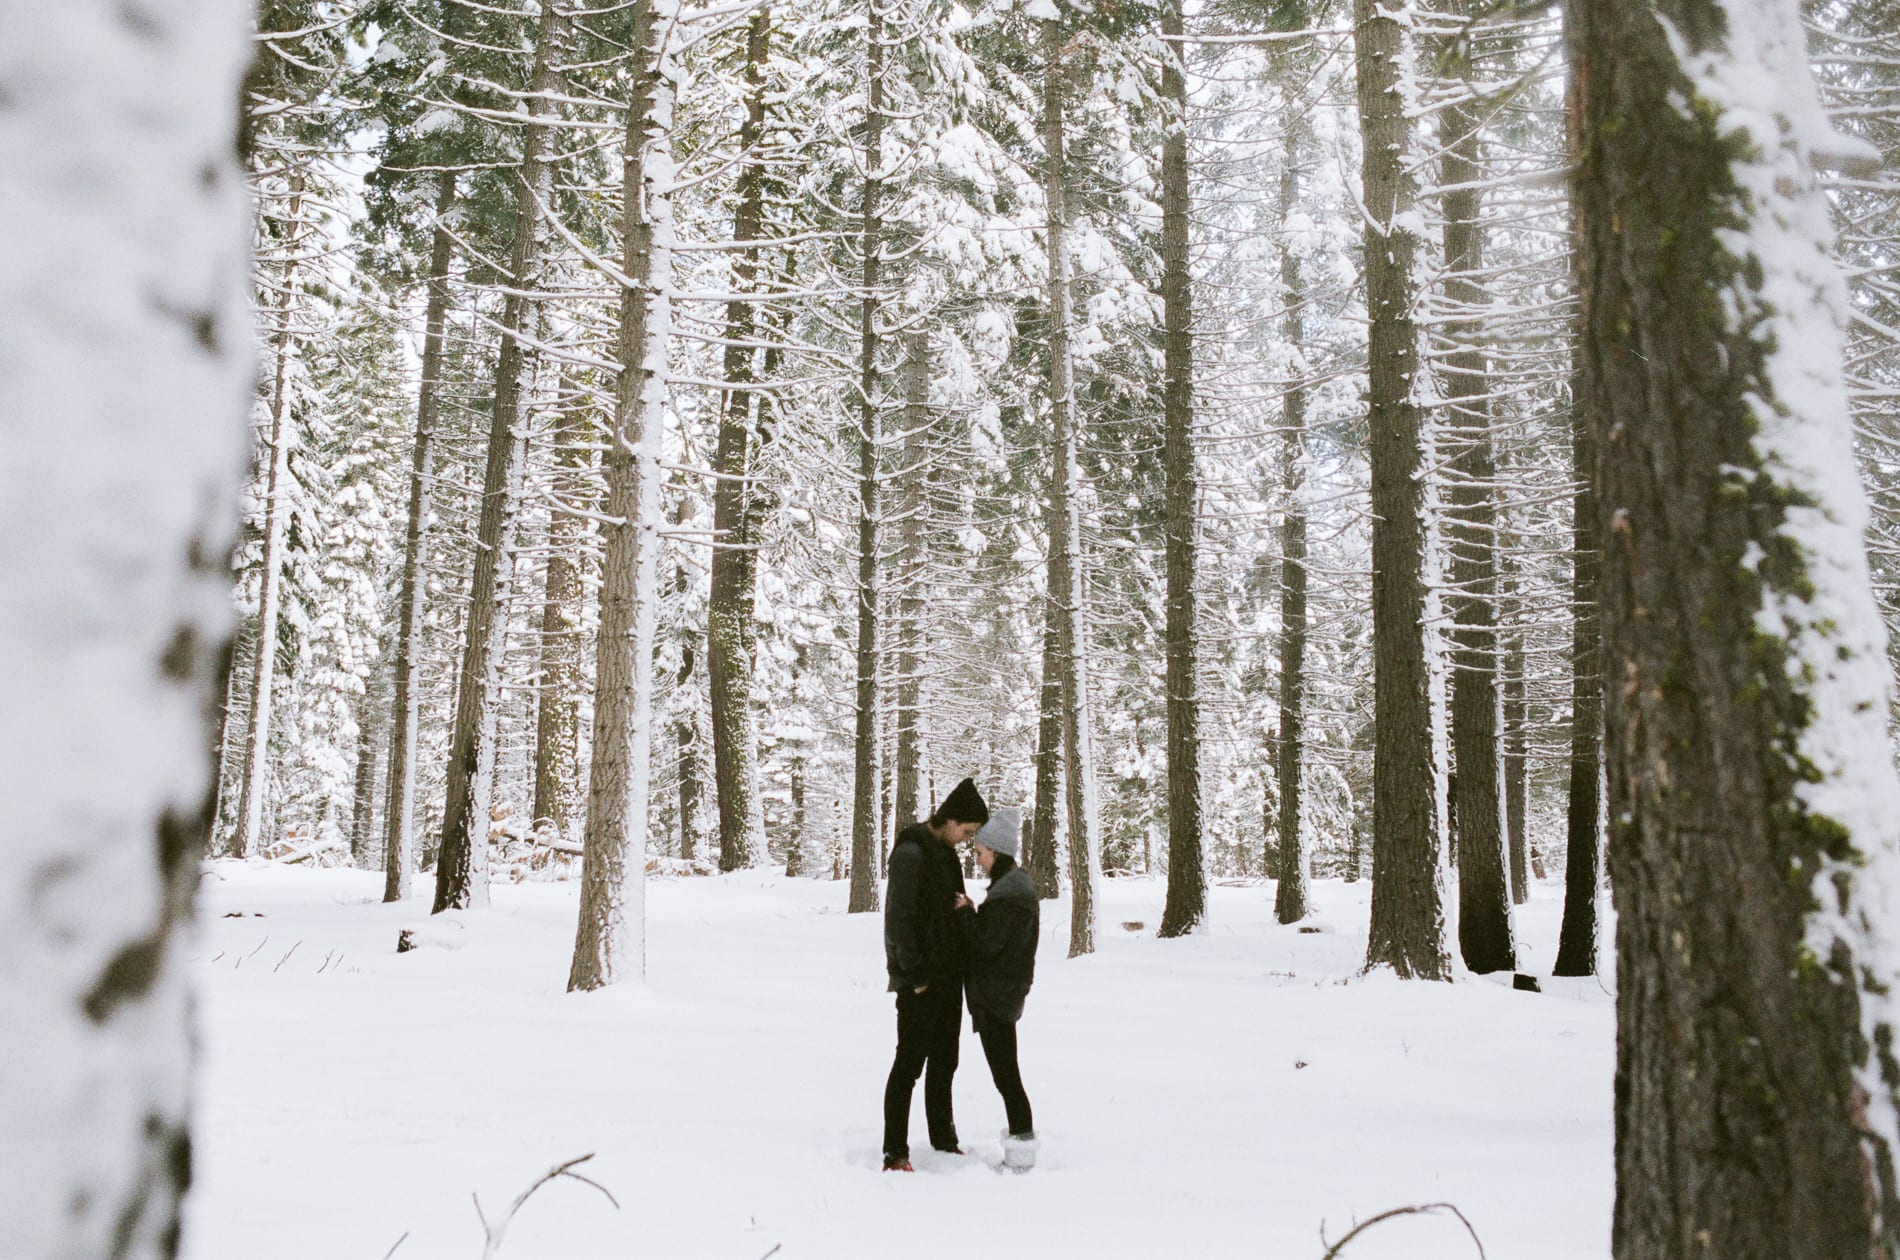 mt-lassen-winter-snow-couples-photo-19